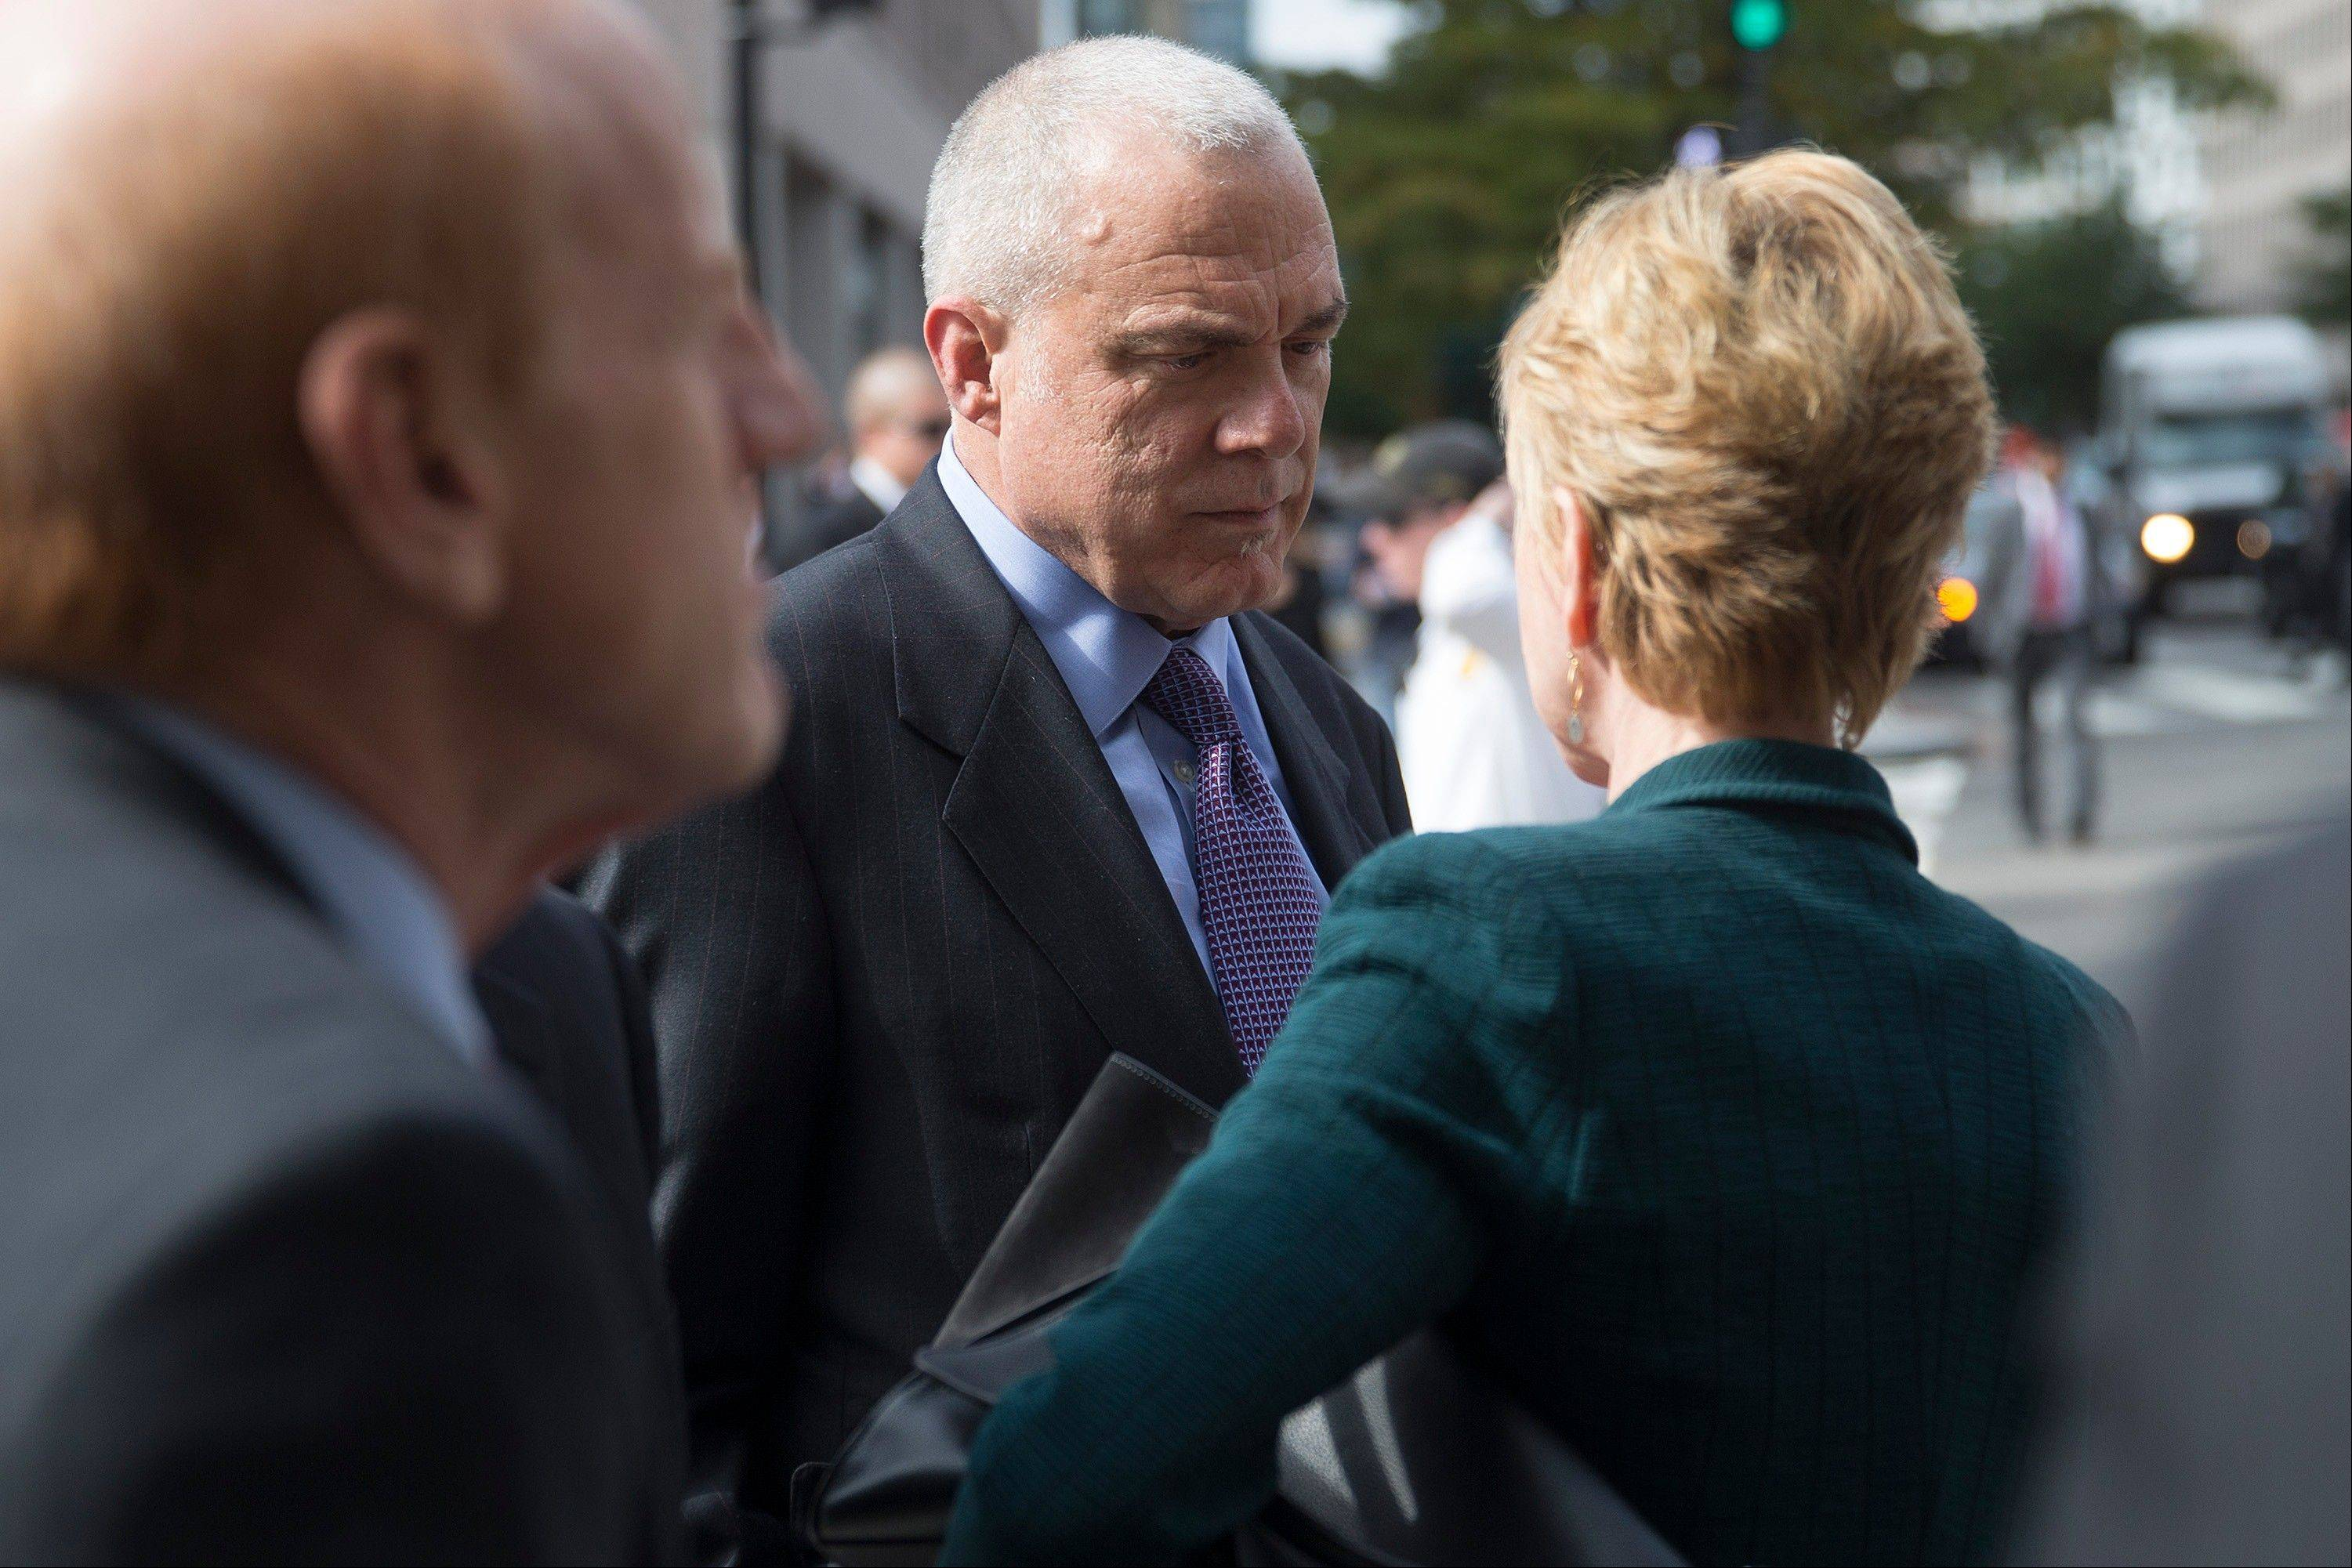 Mark Bertolini, chairman, president and chief executive officer of Aetna Inc., center, talks Wednesday to Karen Ignagni, president and chief executive officer of America's Health Insurance Plans (AHIP), before entering the White House.